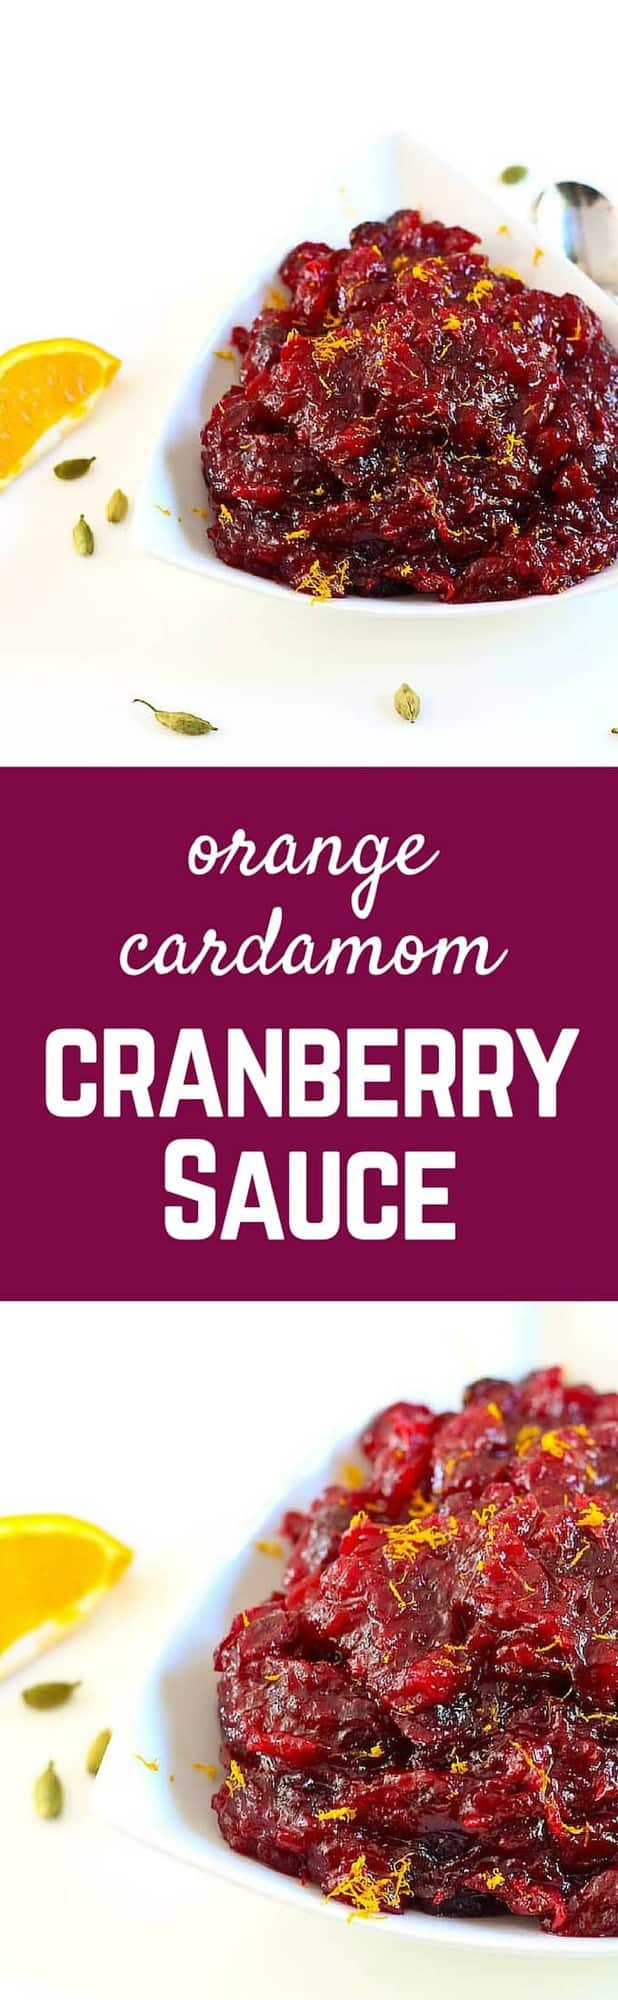 Kick your cranberry sauce game up a notch with this flavorful orange cranberry sauce with cardamom! People will be asking what your secret ingredient is. Get the recipe that's perfect for Thanksgiving on RachelCooks.com!